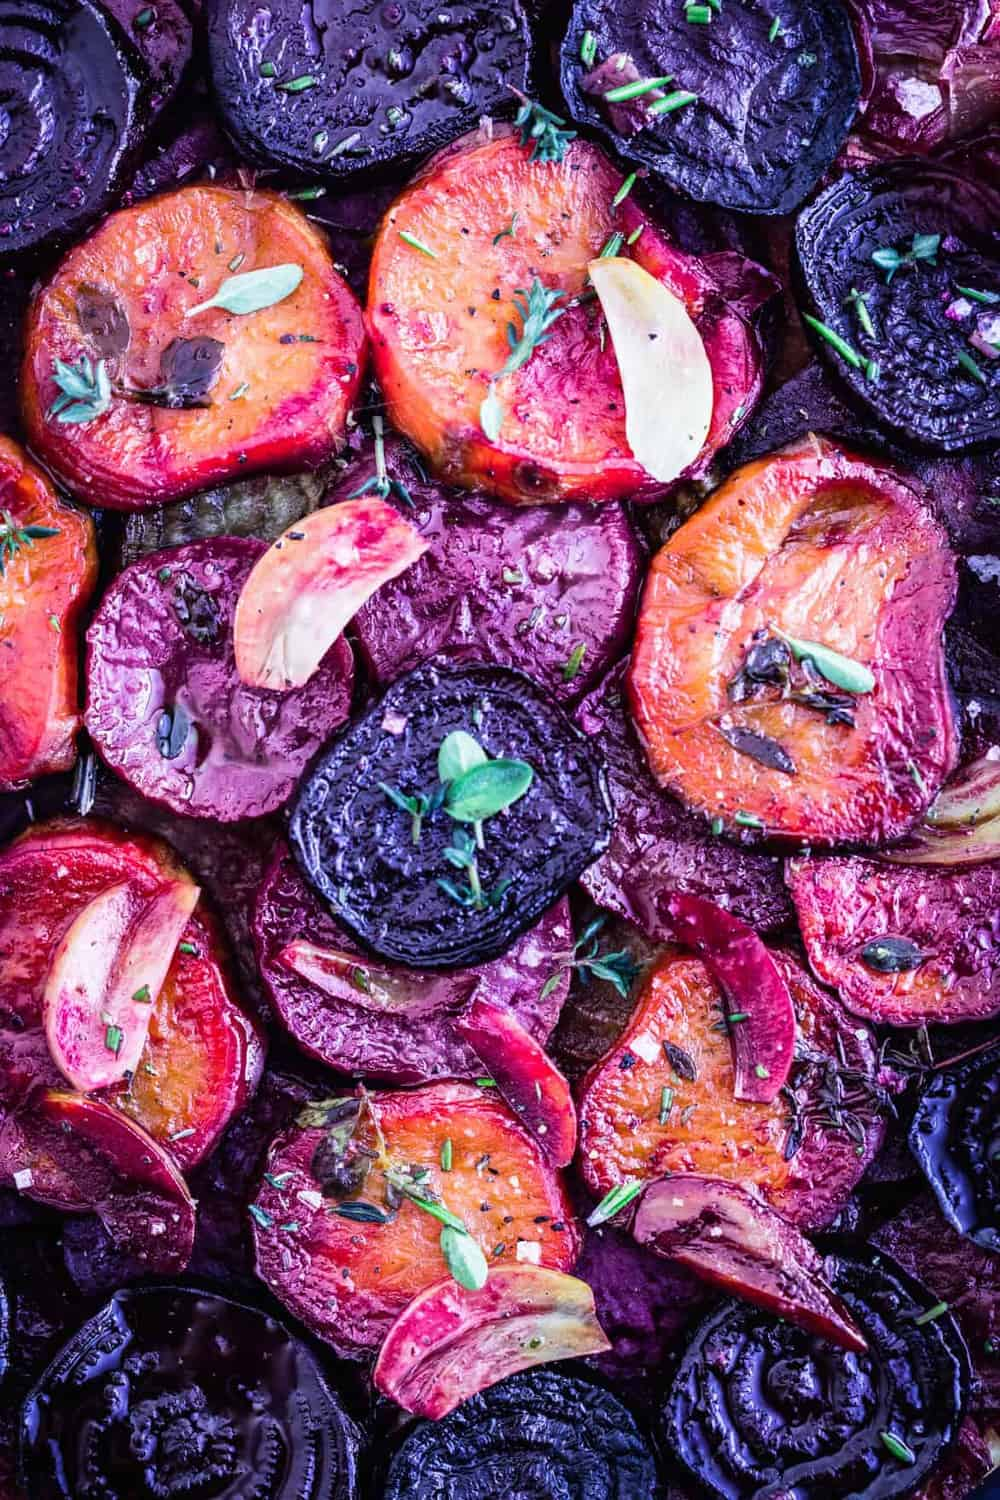 Root Vegetable Tarte Tatin with fresh herbs and garlic, very close up shot of the veggies.